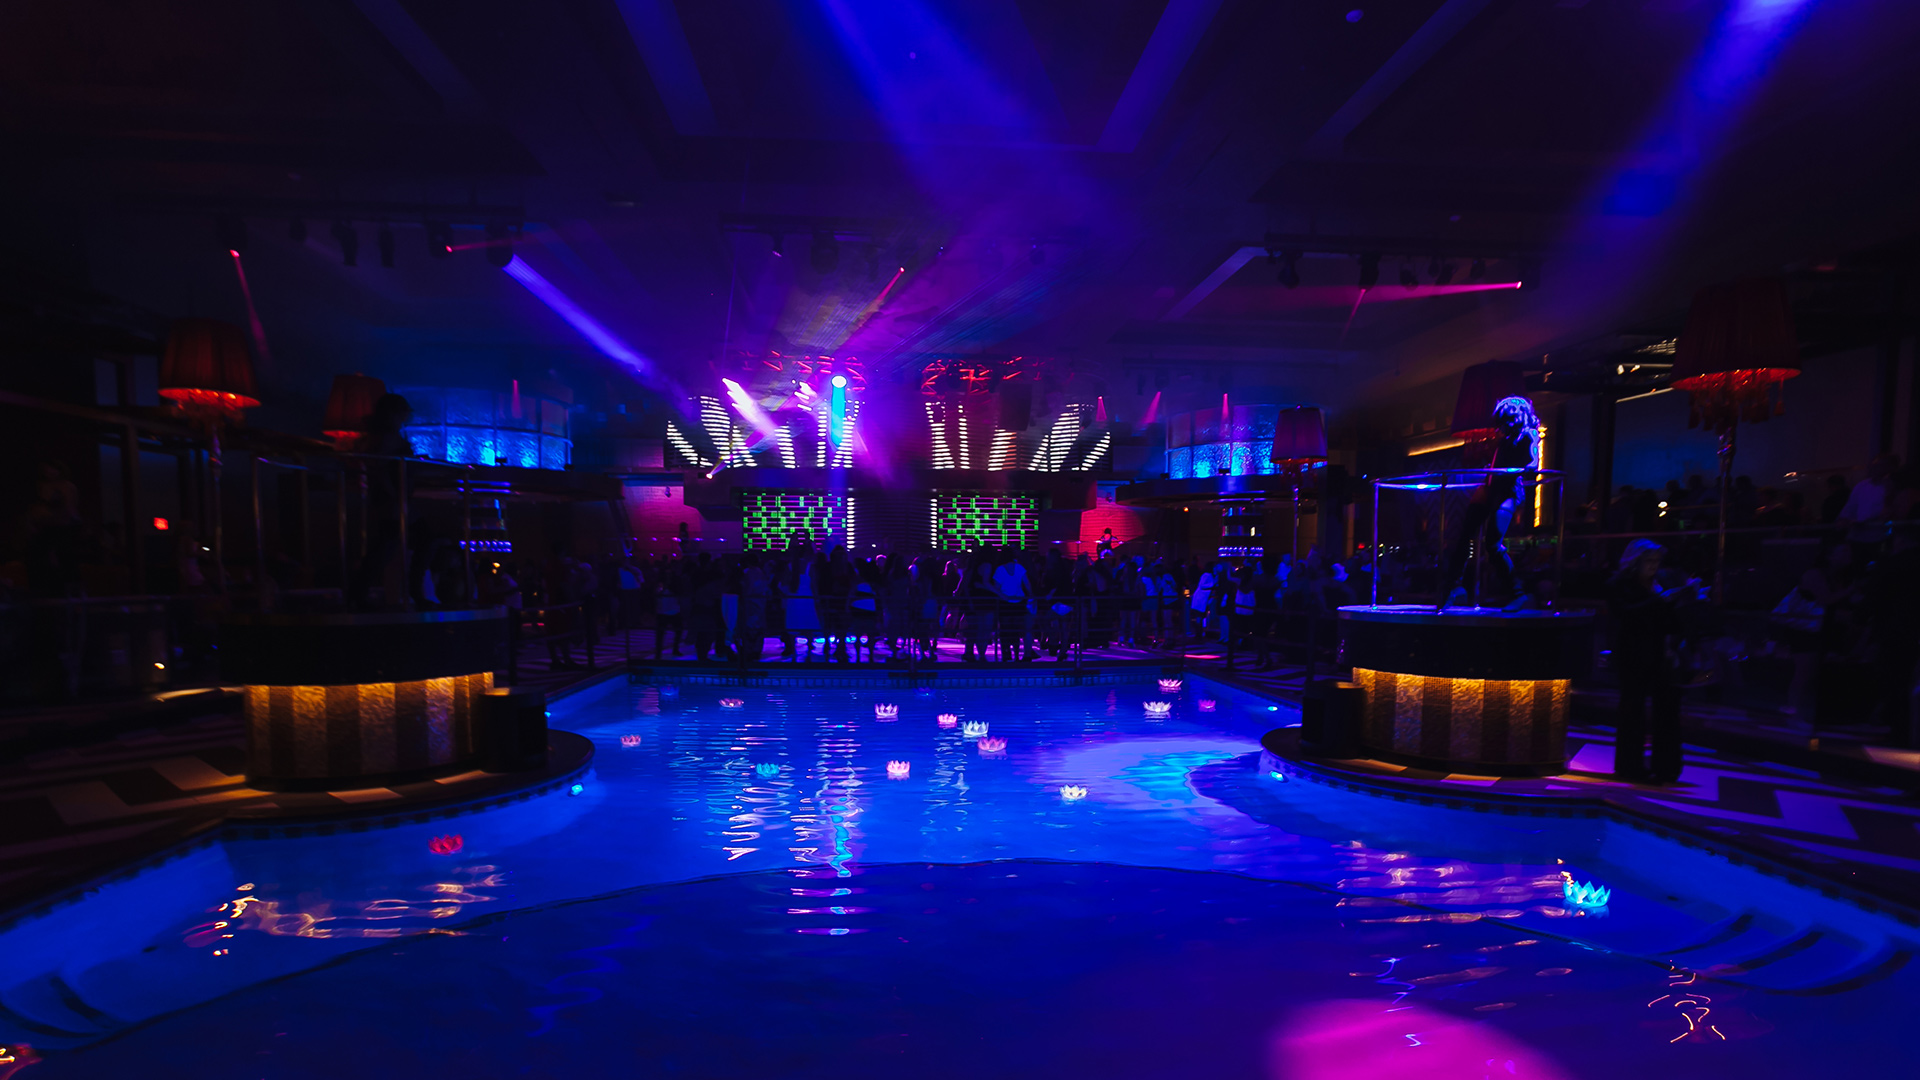 Dancing And Great Pool Lighting In Lex Nightclub At Grand